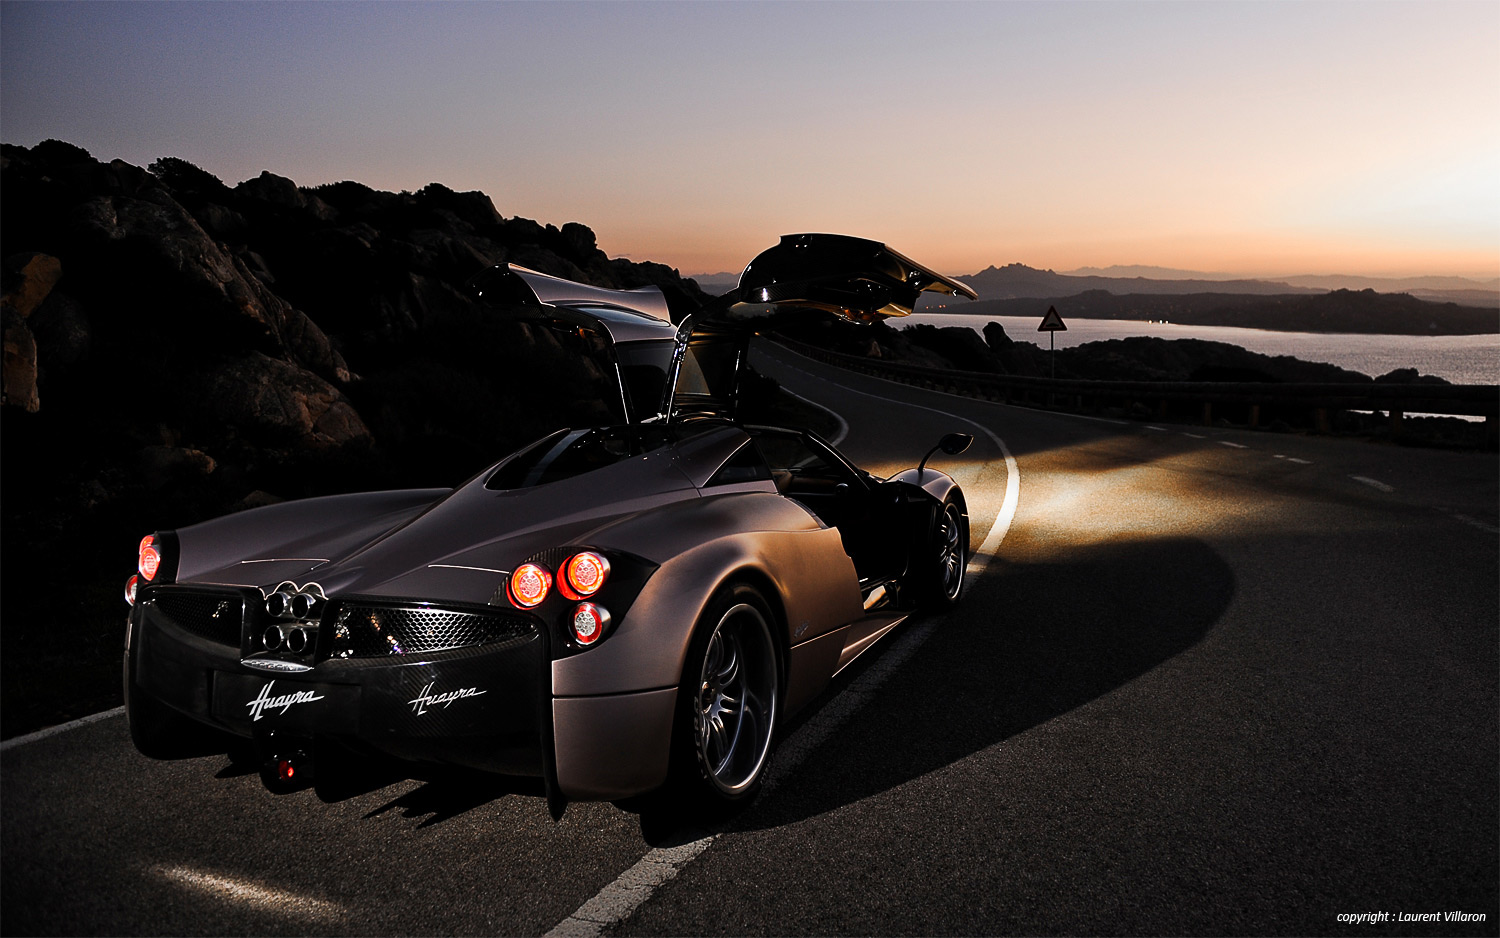 HDQ Cover Pagani Huayra Pictures for 1500x938